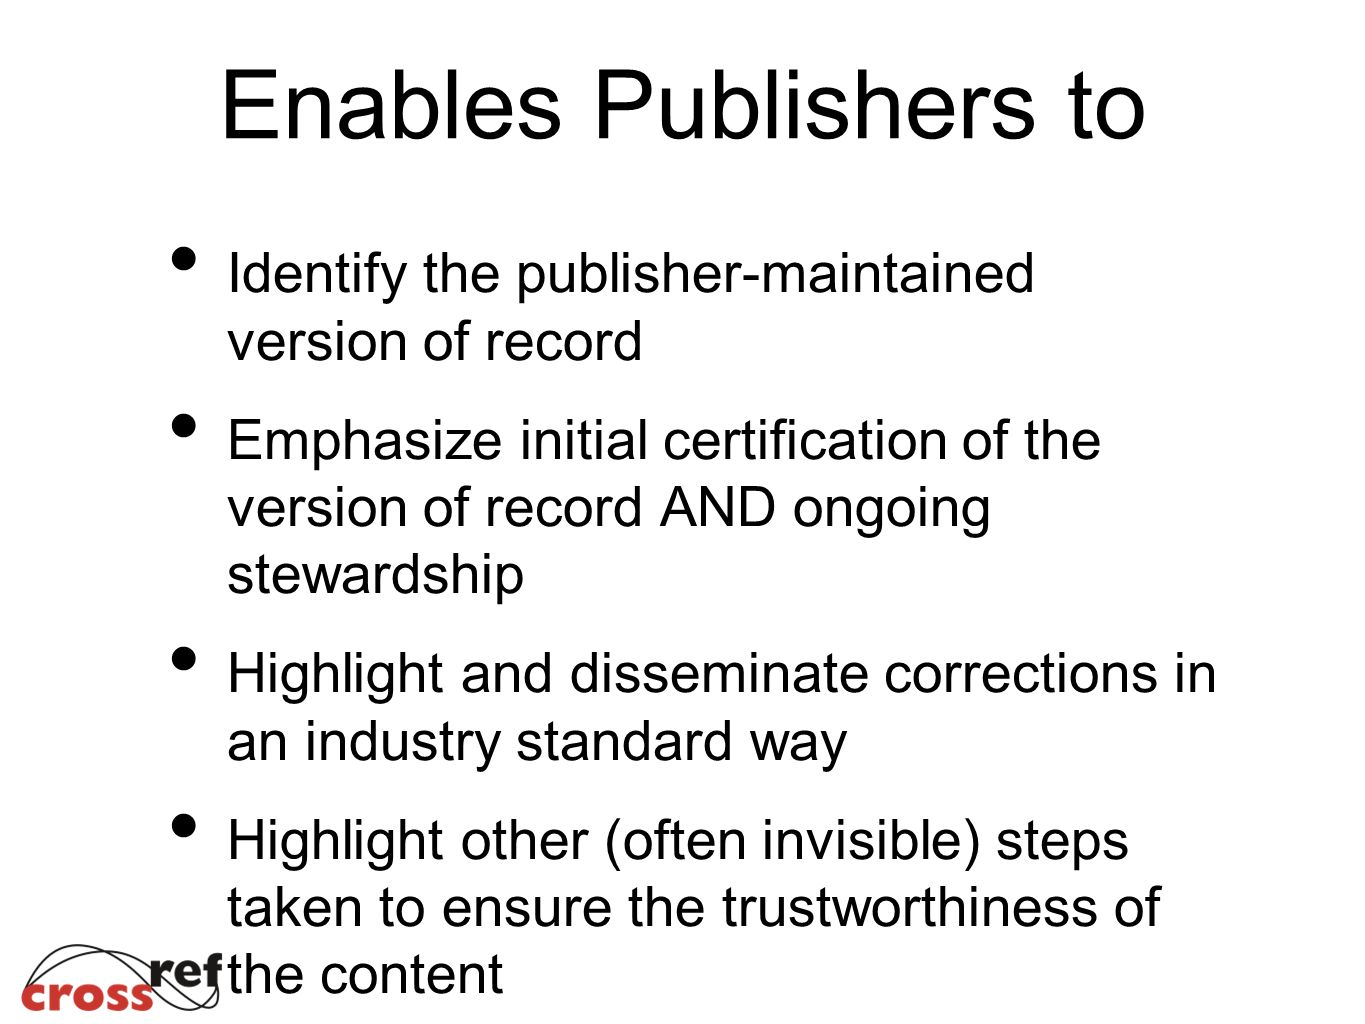 Enables Publishers to Identify the publisher-maintained version of record Emphasize initial certification of the version of record AND ongoing steward